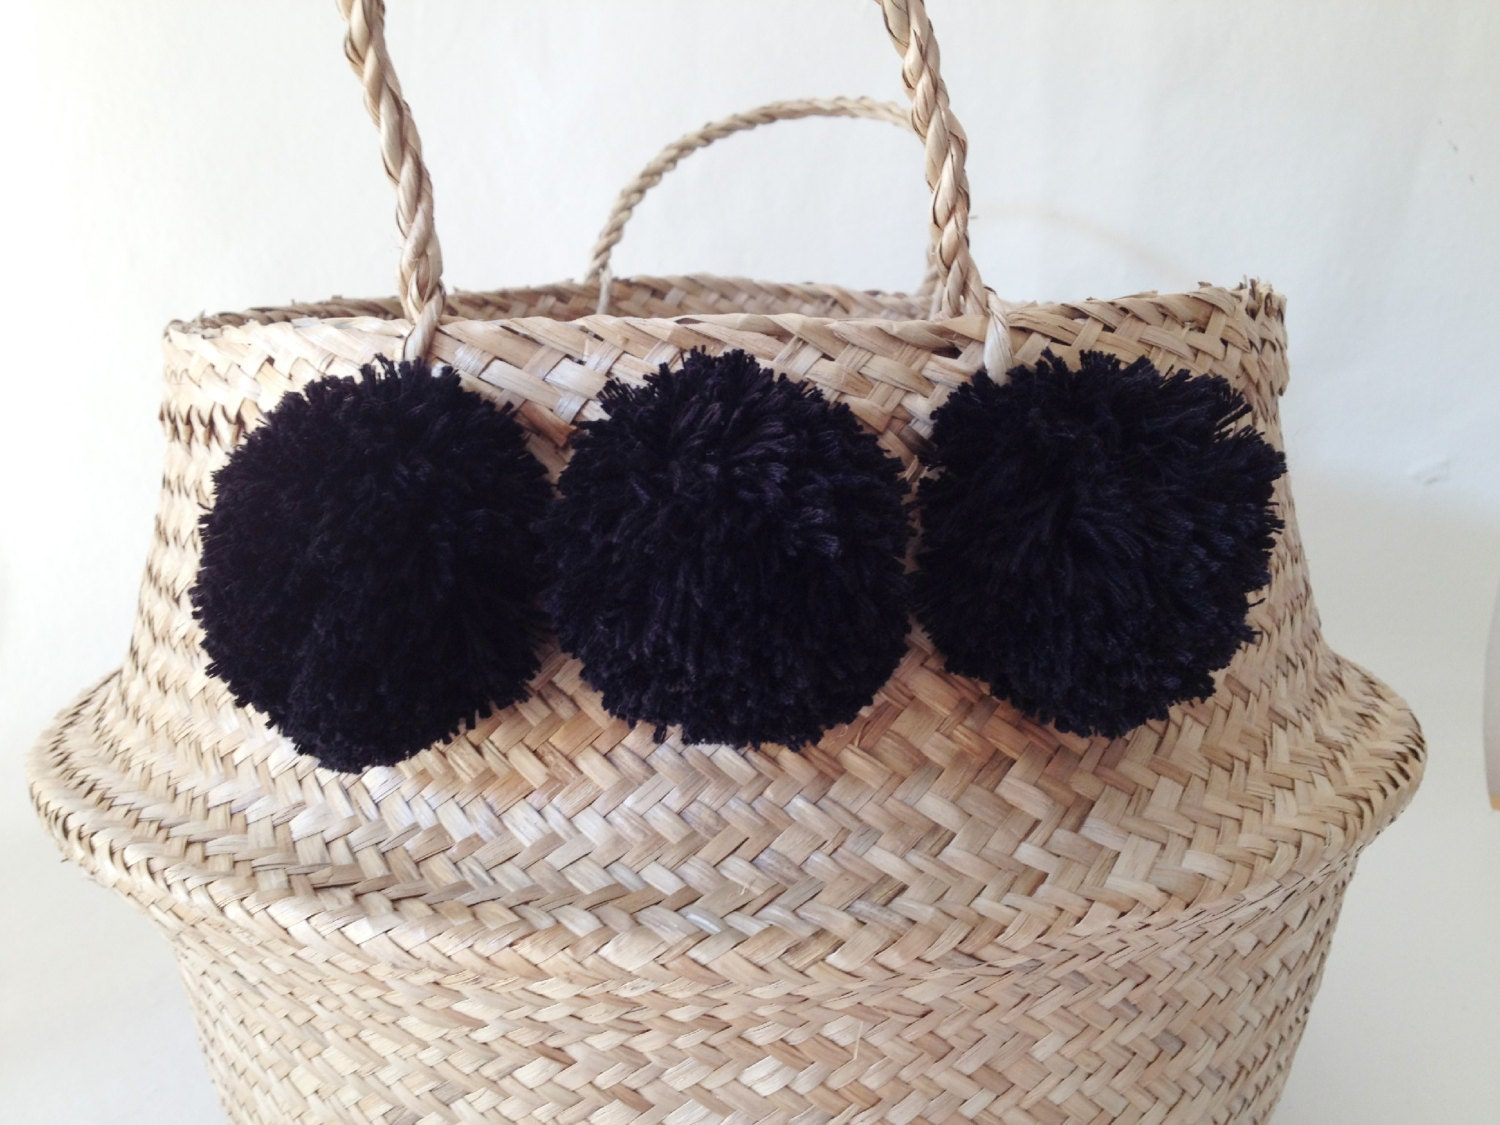 pom pom seagrass belly basket black panier boule storage. Black Bedroom Furniture Sets. Home Design Ideas